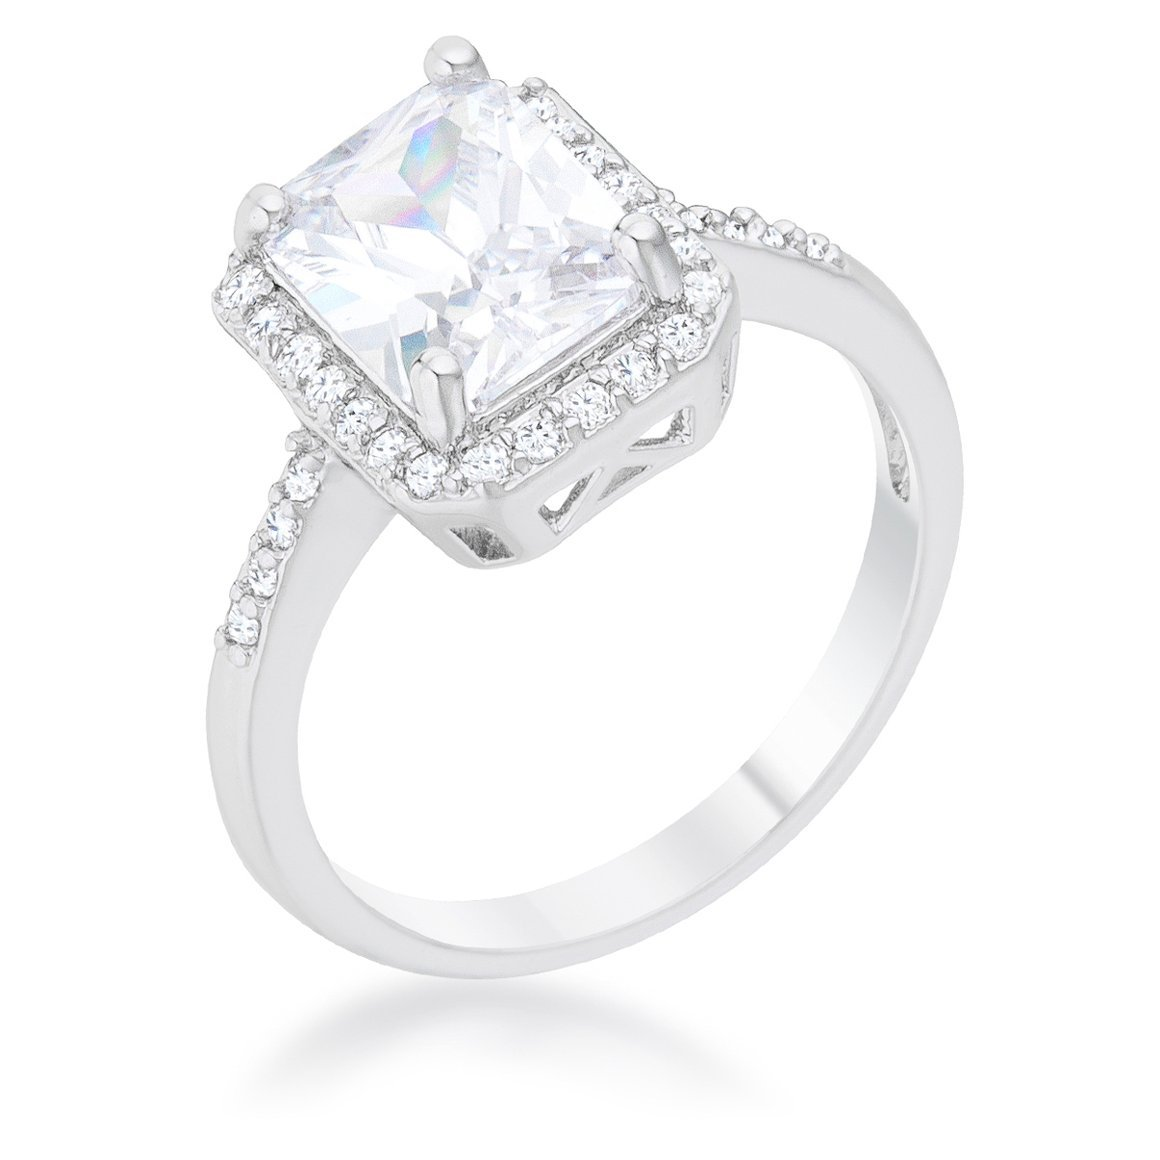 Cubic Zirconia Ariana 2.95 ct Rhodium Plated Classic Ring Just Reduced